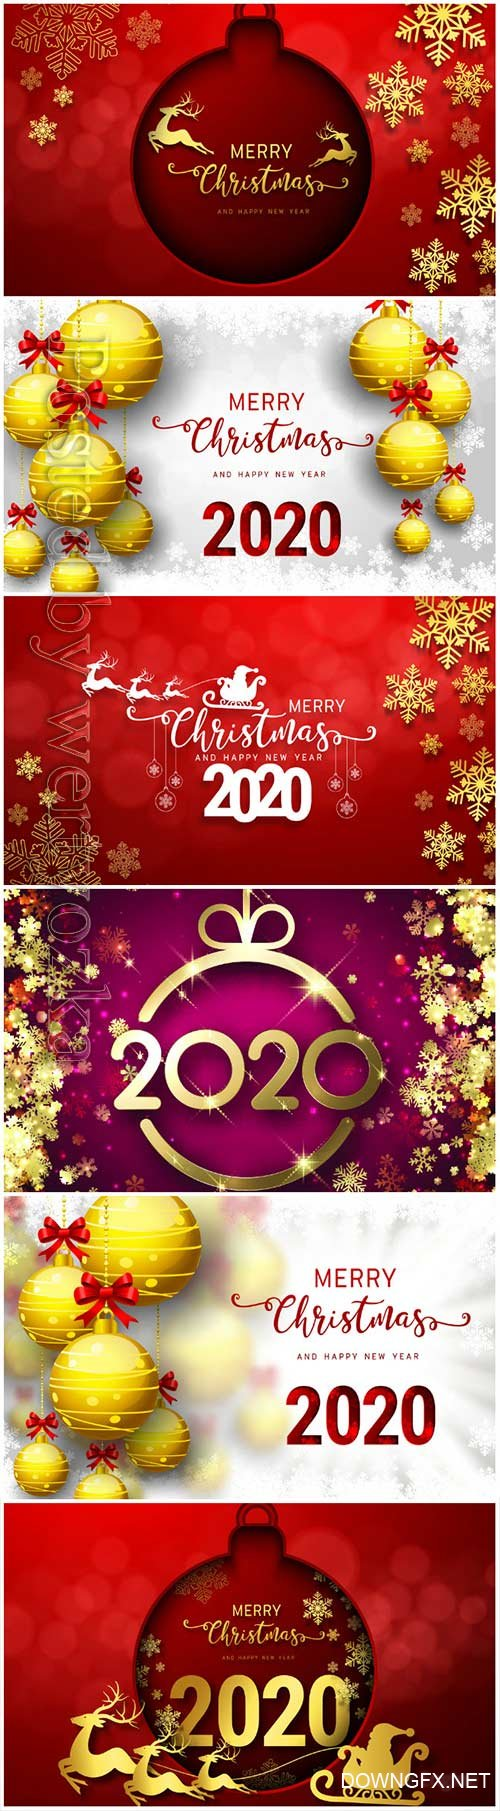 2020 Merry Chistmas and Happy New Year vector illustration # 11